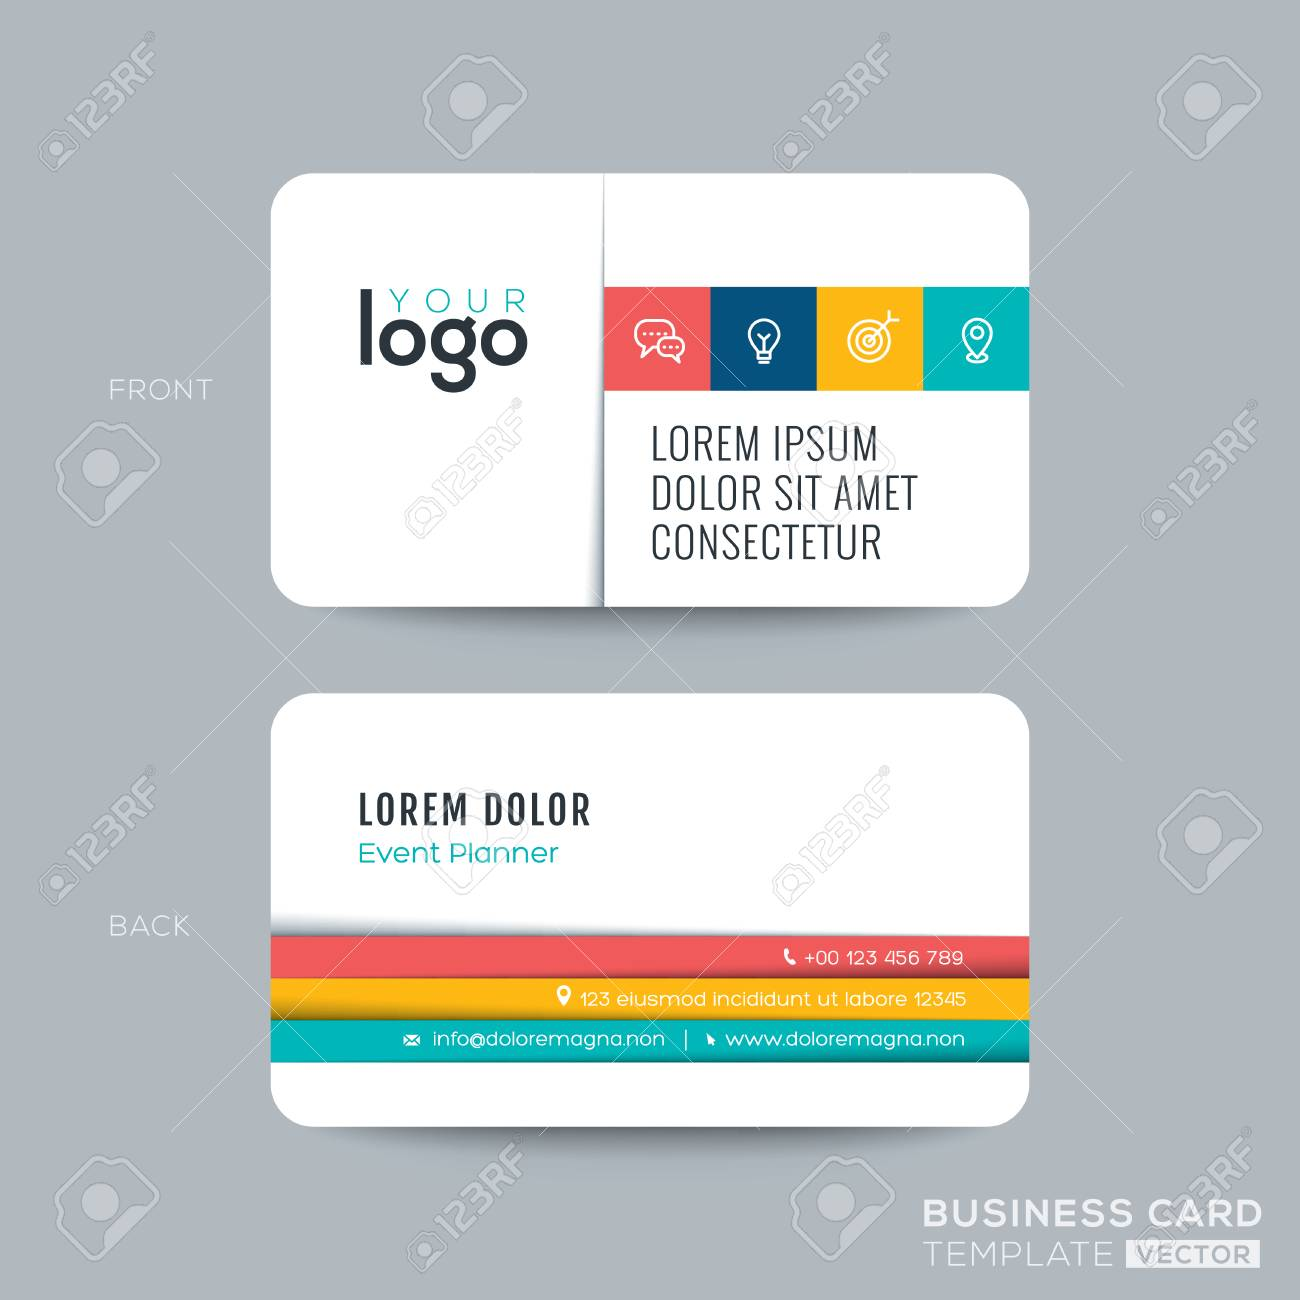 Clean And Simple Business Card Namecard Design With Color Stripes On White Background Stock Vector